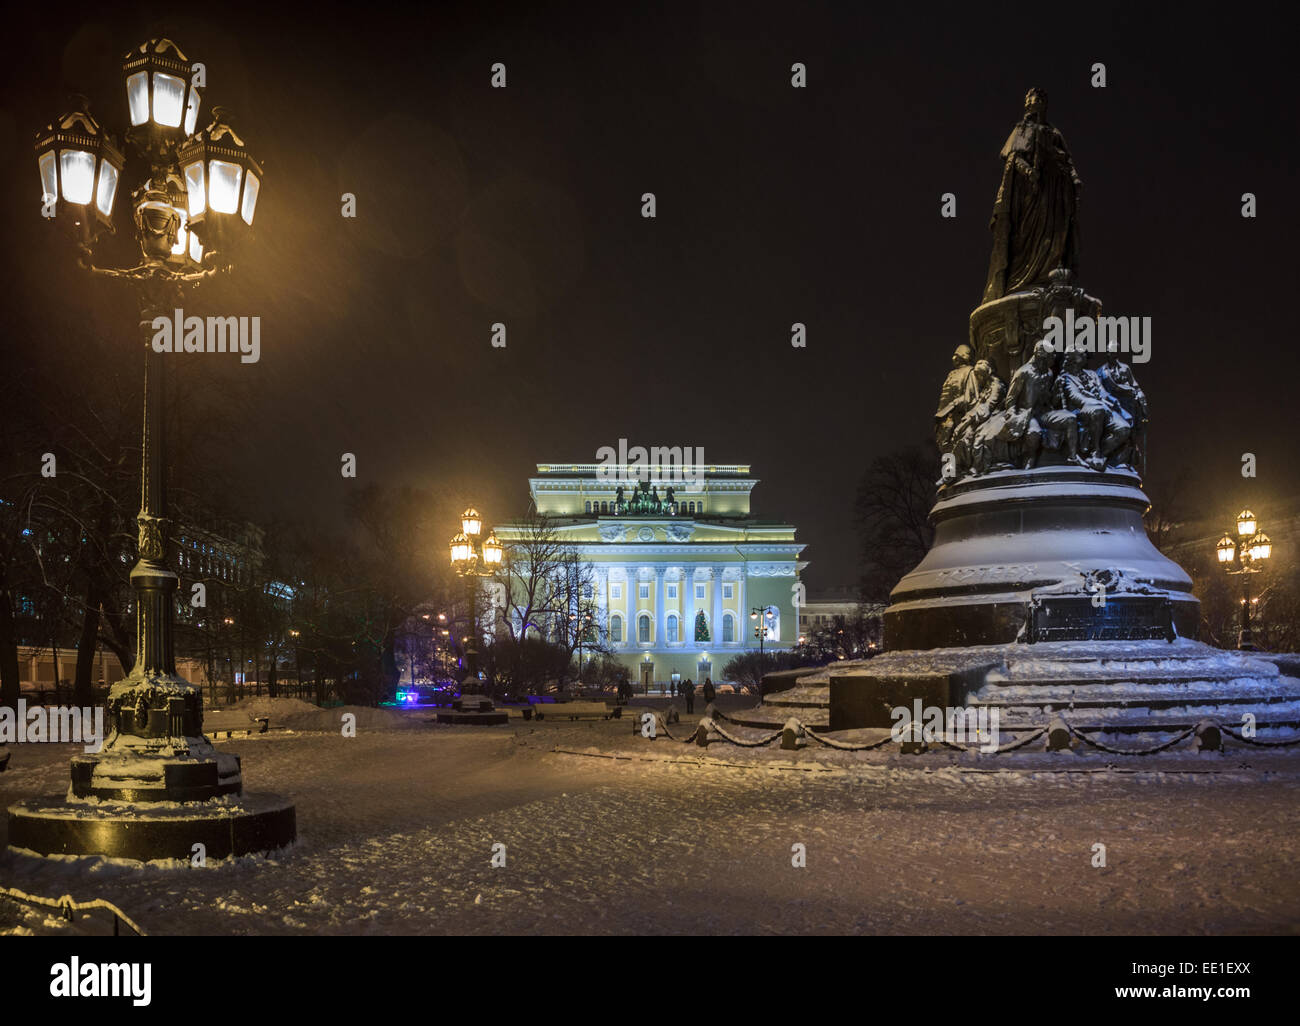 Alexandrinsky Theatre or Russian State Pushkin Academy Drama Theater and Monument Catherine II the Great. St.Petersburg, - Stock Image